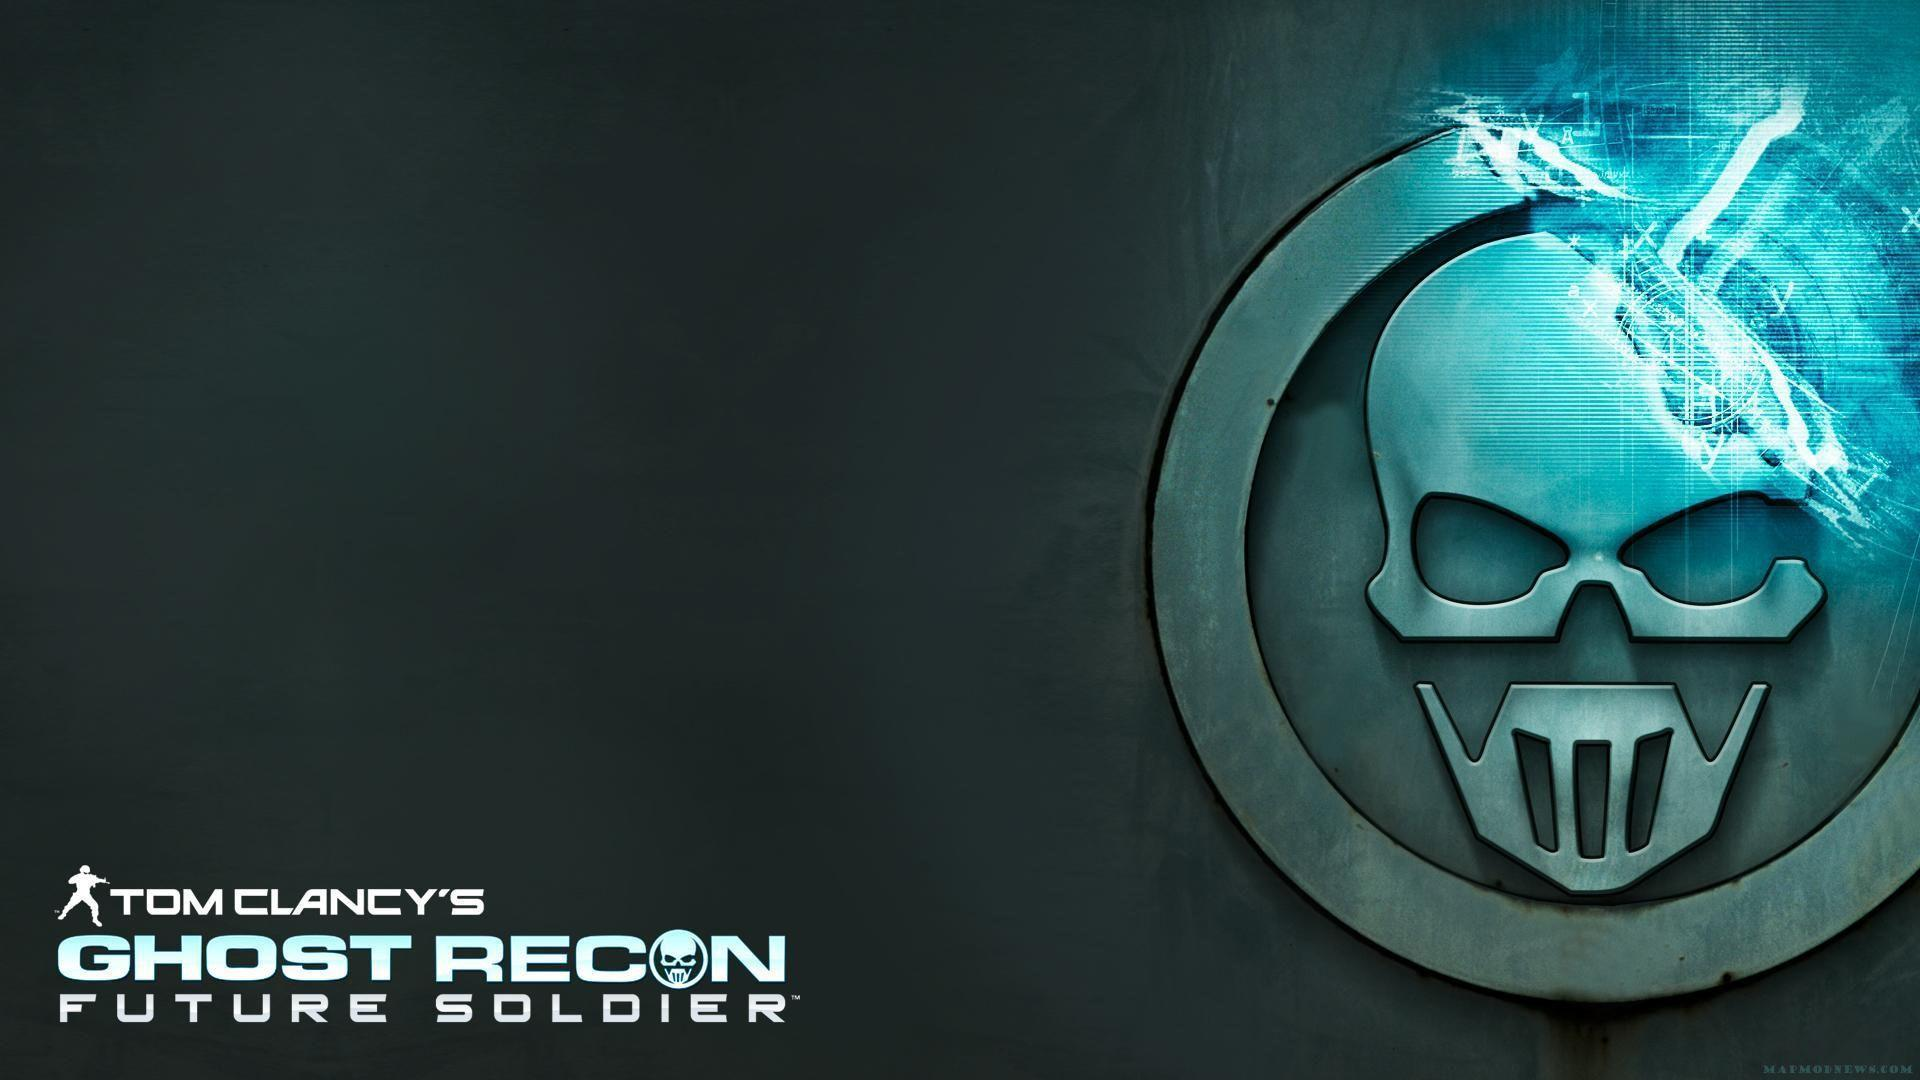 Ghost Recon Future Soldier Wallpapers - Wallpaper Cave